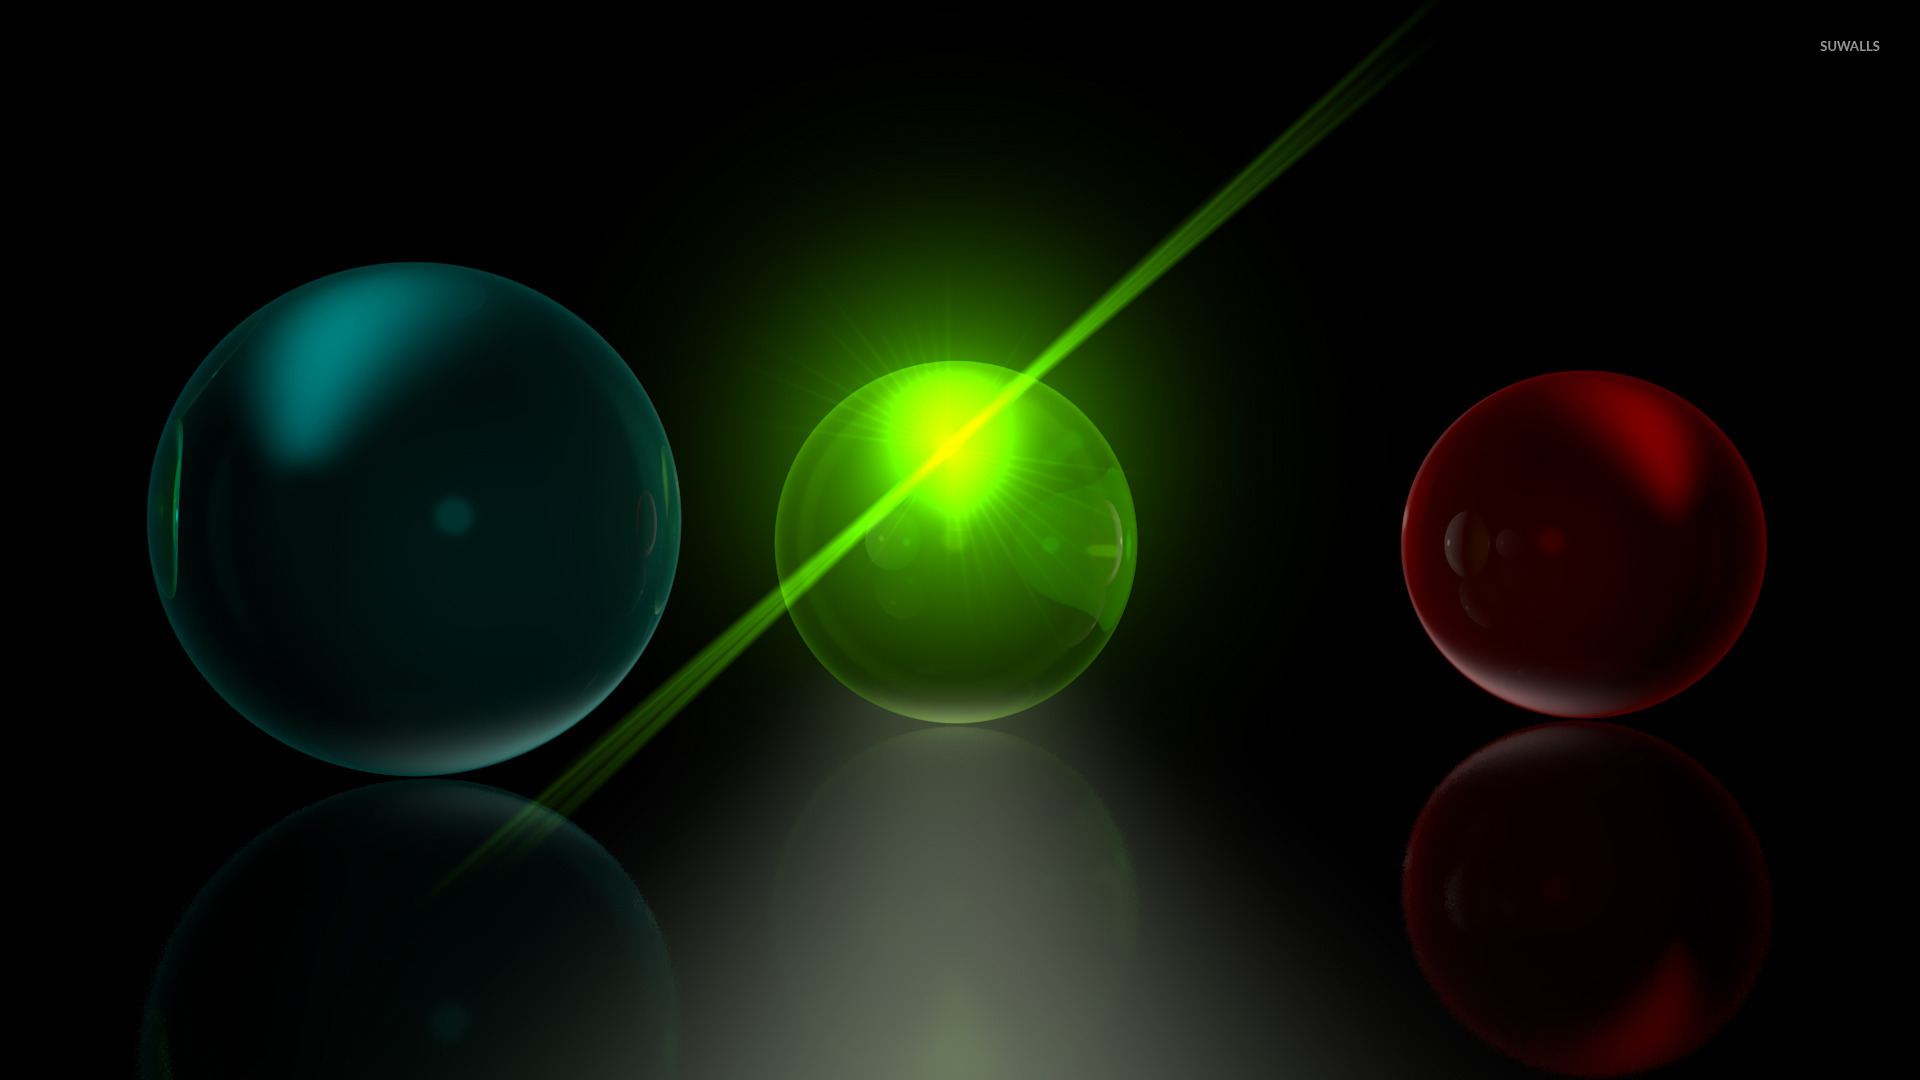 3d Bubbles Wallpaper: 3D Bubbles Wallpaper